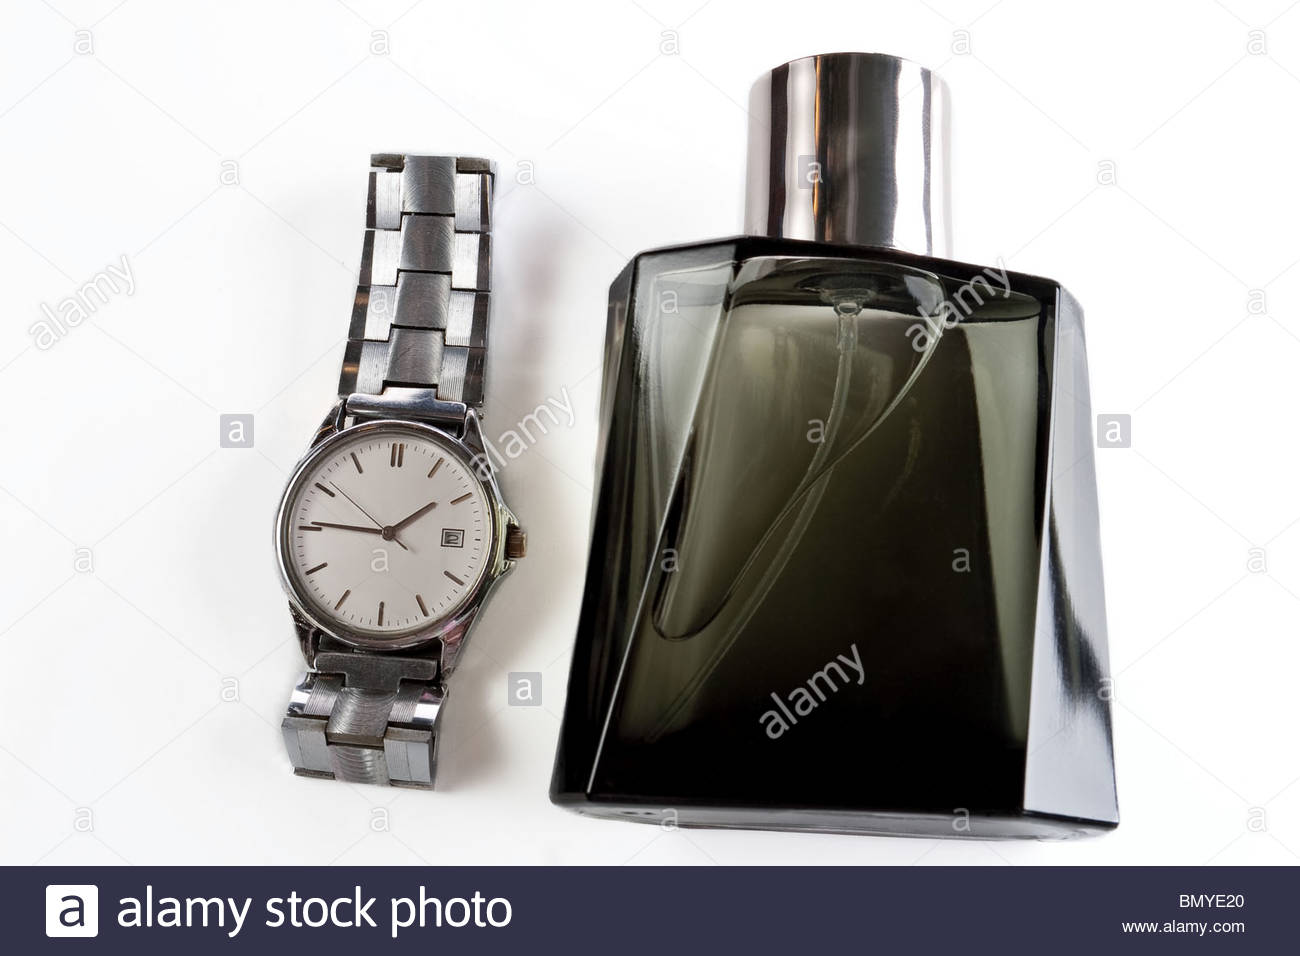 perfume and men's watches - Stock Image